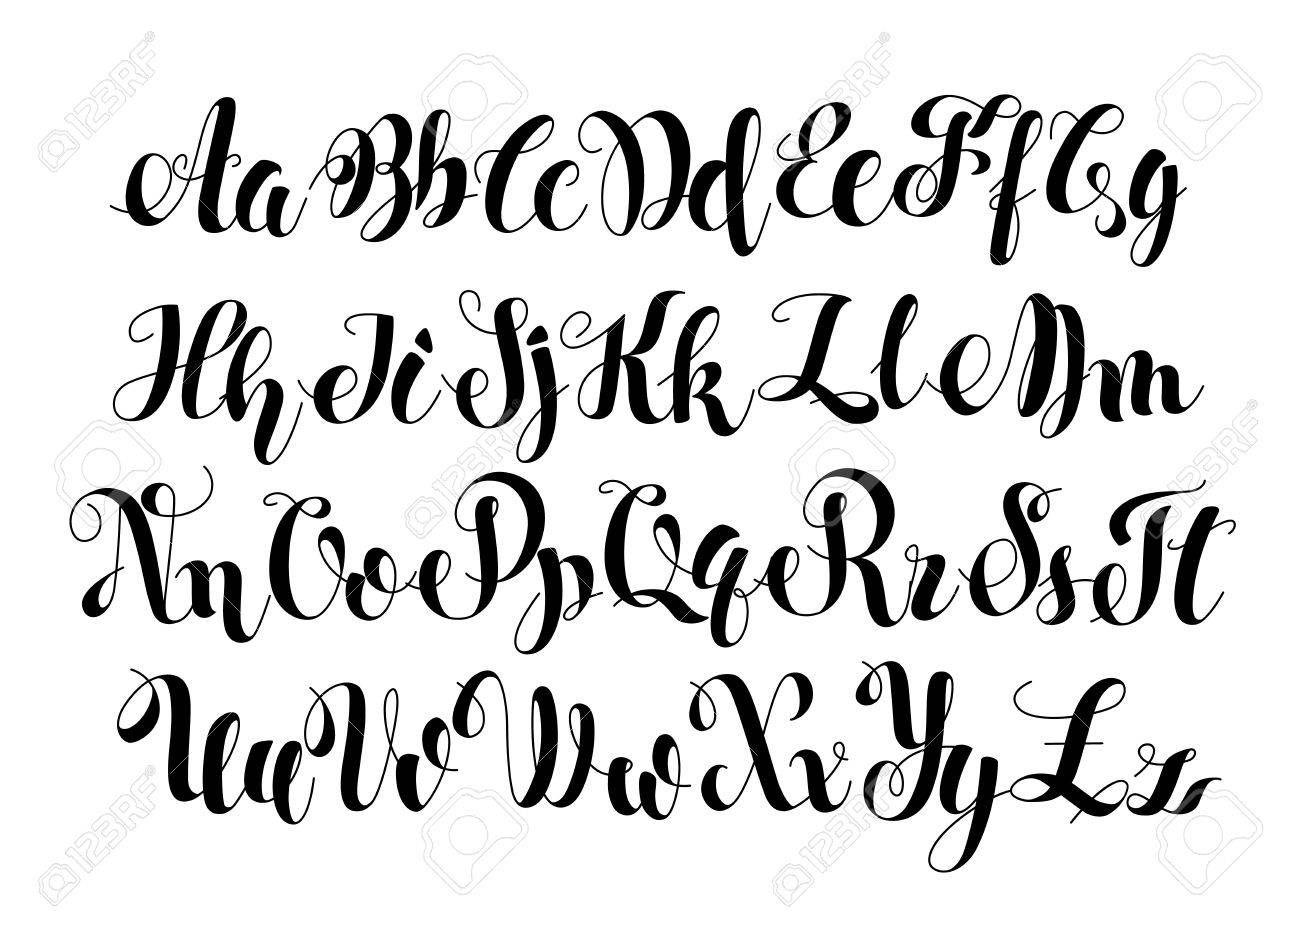 Handwritten Calligraphy Symbols Black And White Lettering Abc Letters Modern Brushed Painted English Al Lettering Alphabet Calligraphy Handwriting Lettering